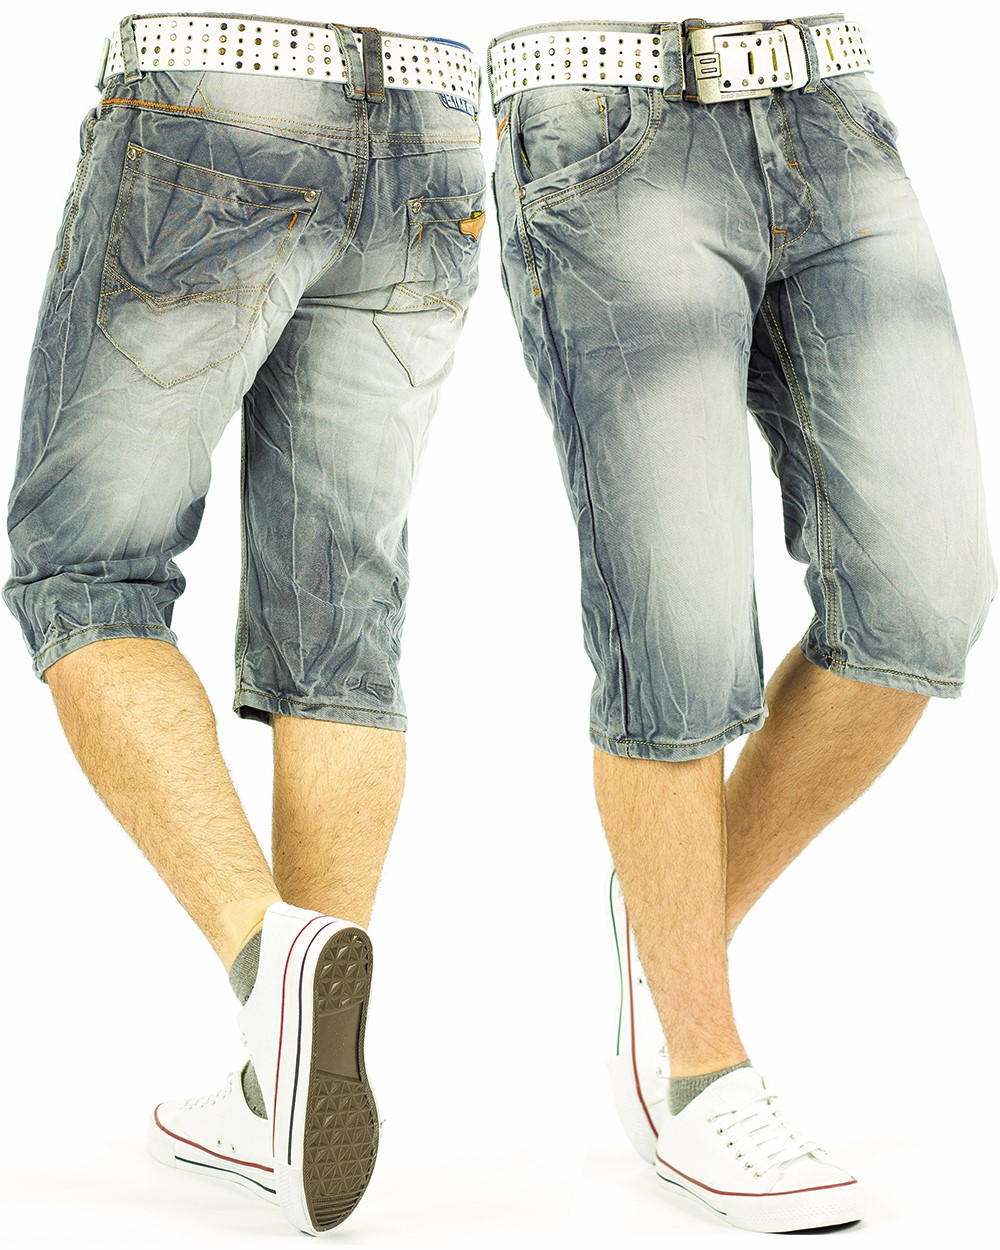 herren jeans shorts capri kurze hose mens pants denim jogging jogg dope swag wow ebay. Black Bedroom Furniture Sets. Home Design Ideas